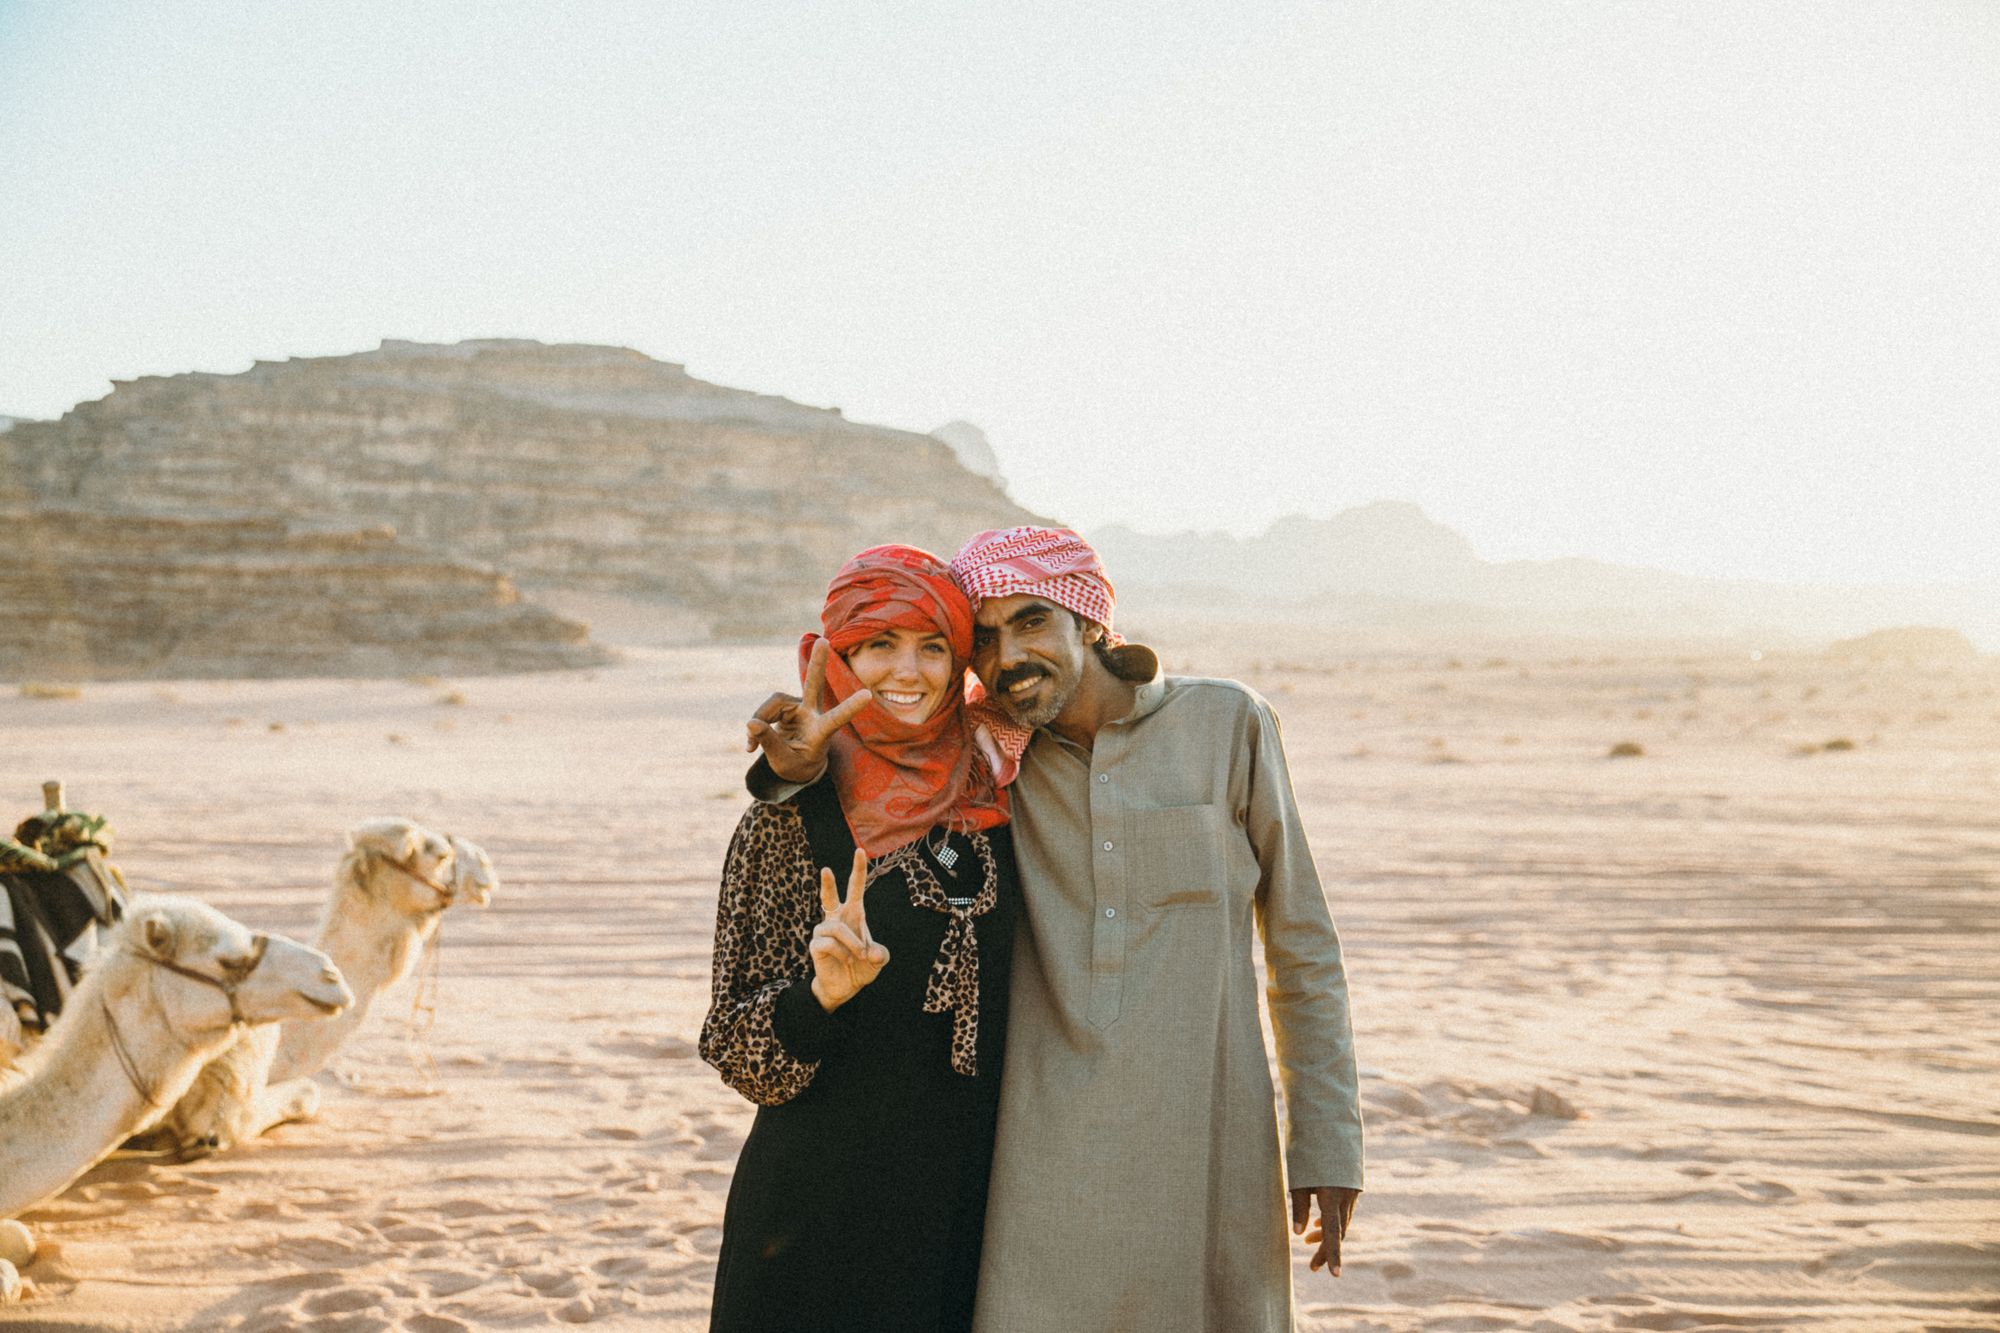 I love Jordanians because every time I wanted a photo of them they always wanted a photo of me too! It's only fair??